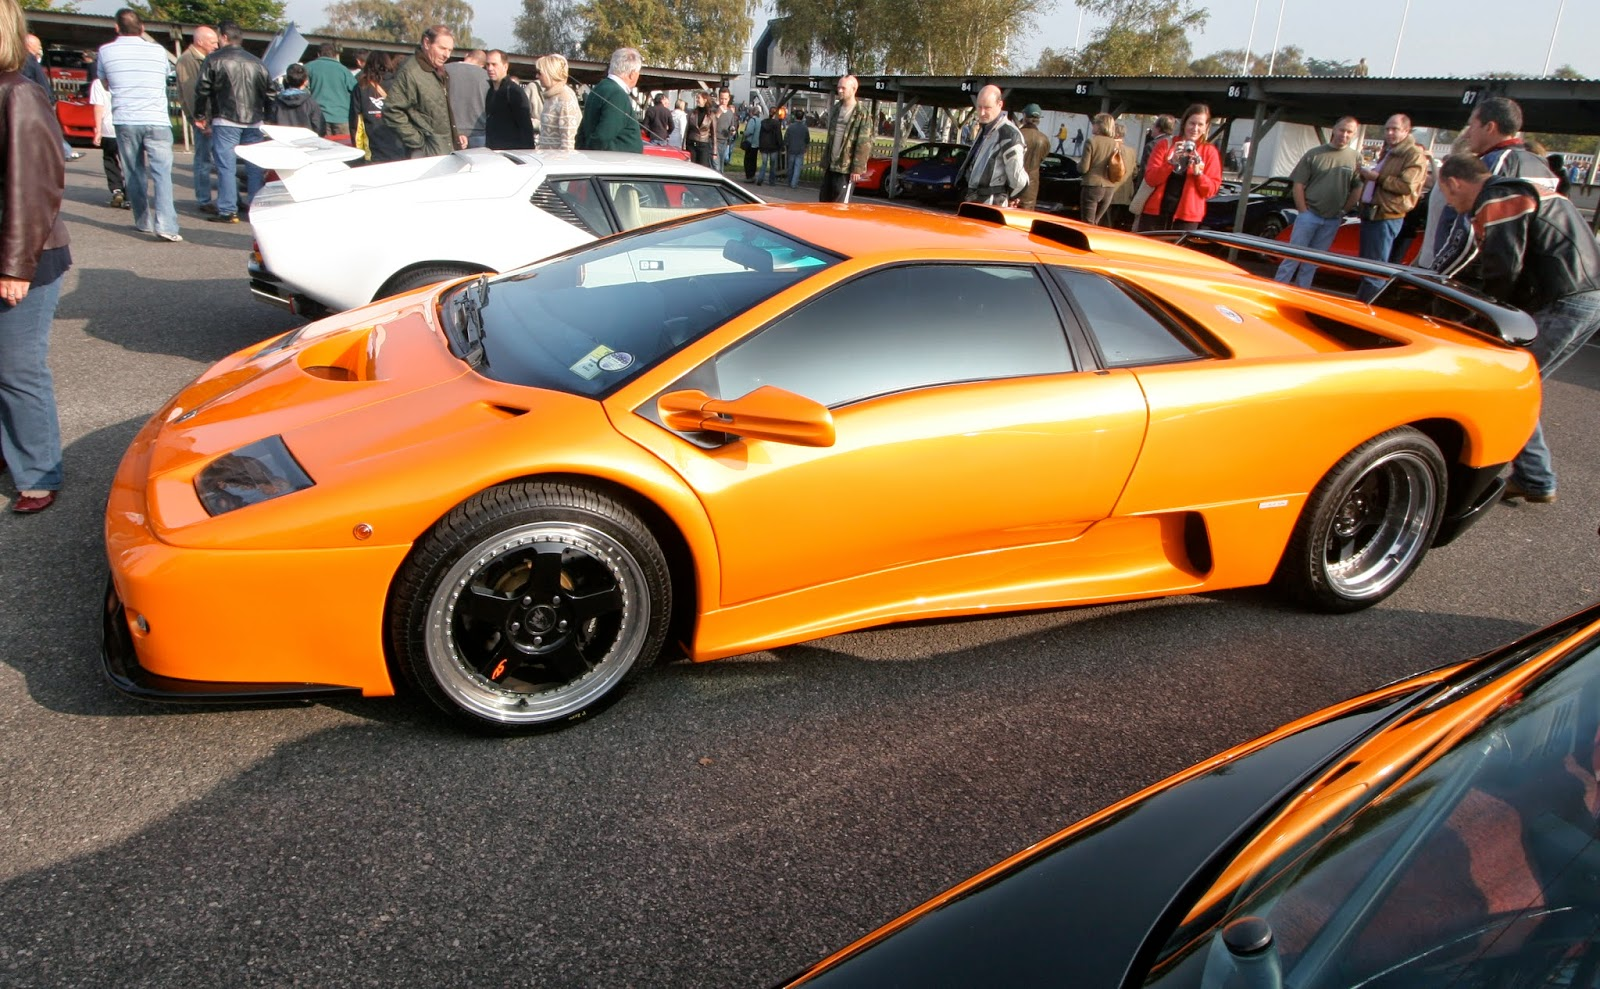 The Diablo would be Lamborghini's mainstay throughout the '90s; it was continually updated throughout the various changes in ownership.